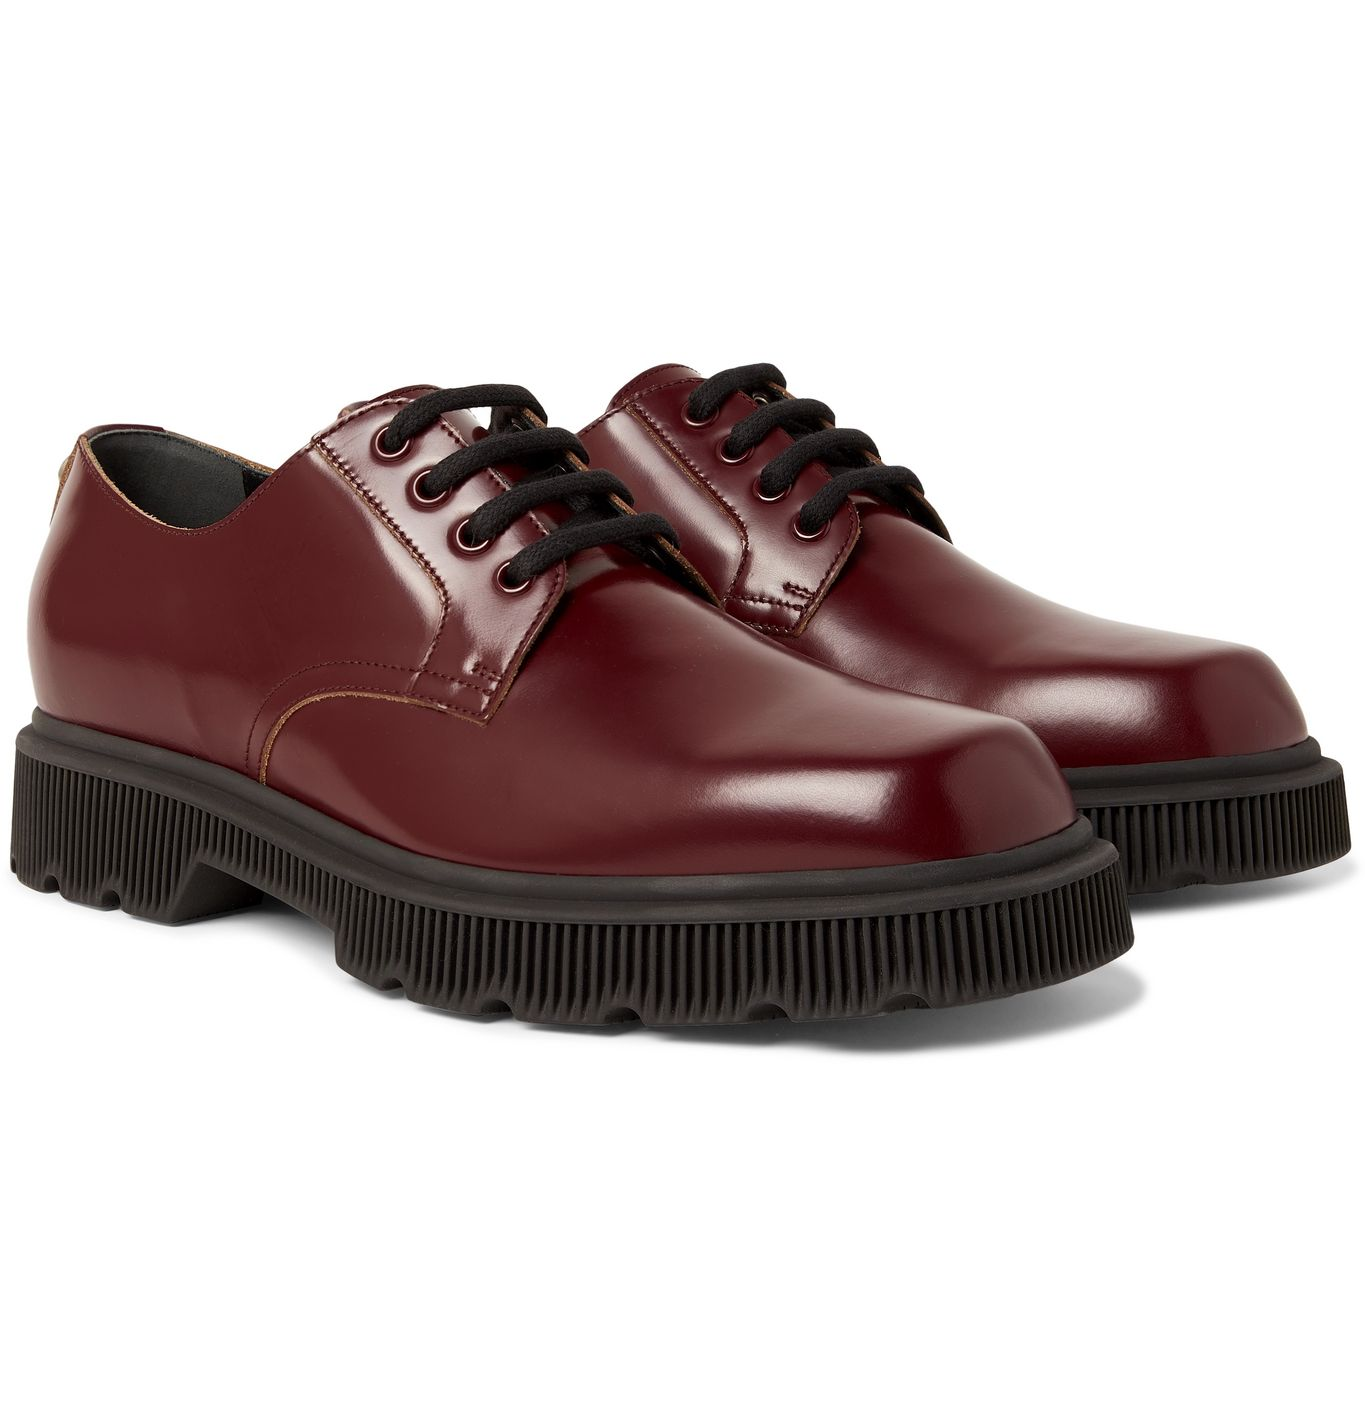 Men's Lace-up Shoe